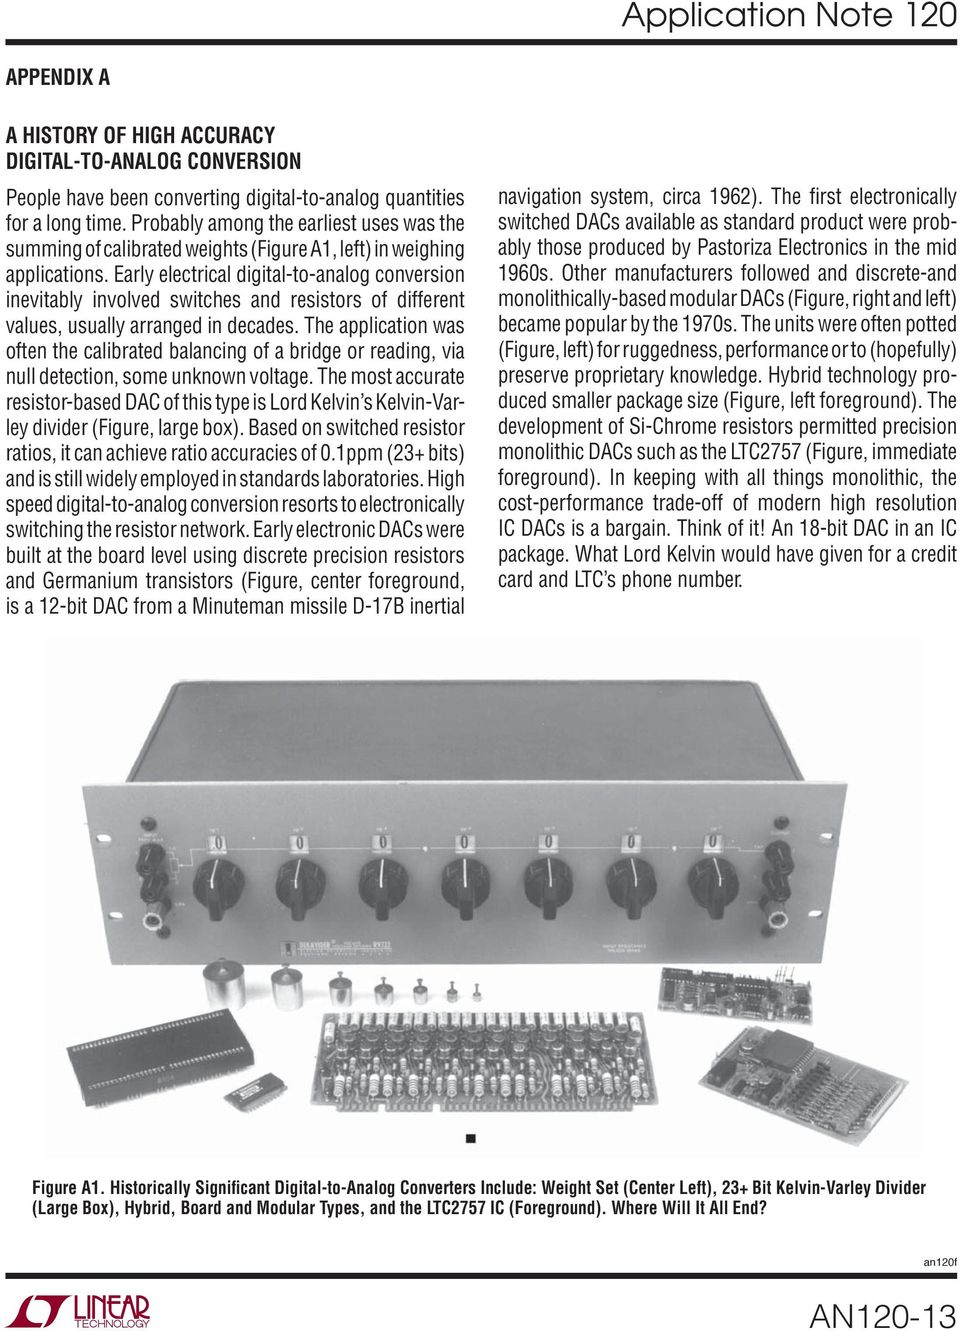 Early electrical digital-to-analog conversion inevitably involved switches and resistors of different values, usually arranged in decades.